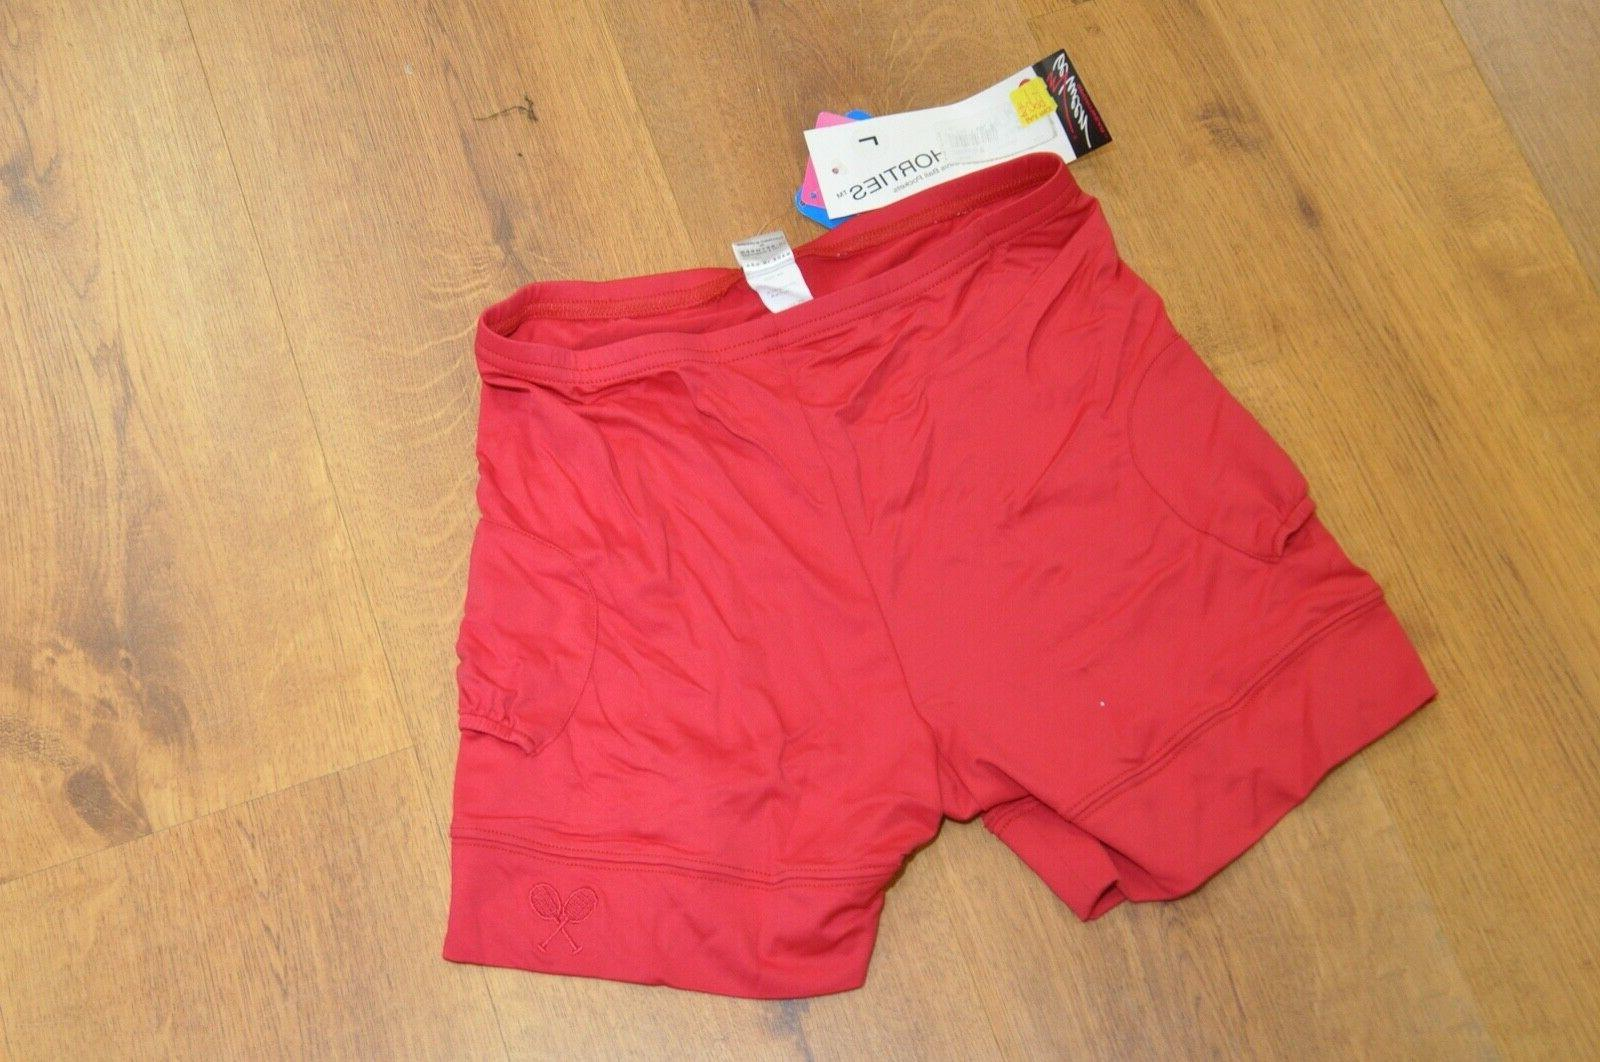 Ladies New Ball Panties clothing CLEARANCE SALE!